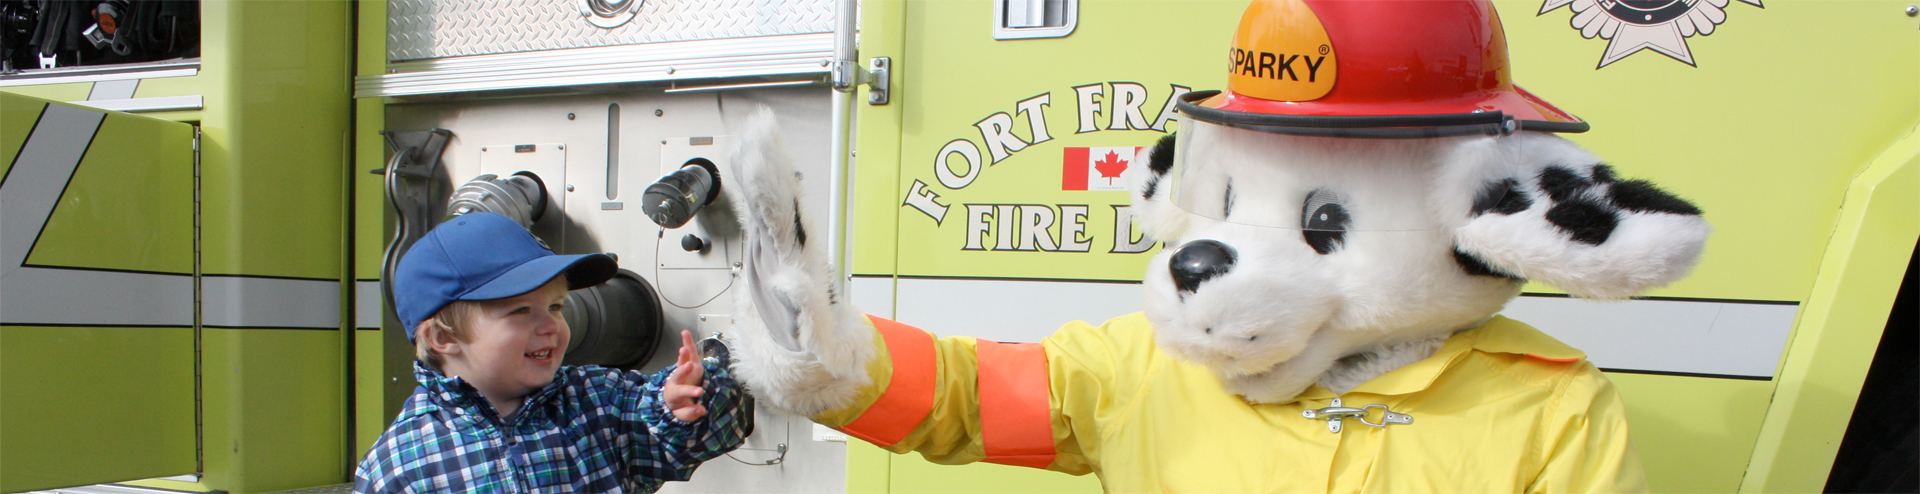 Little kids meeting Sparky the dalmation, next to the Town of Fort Frances fire truck